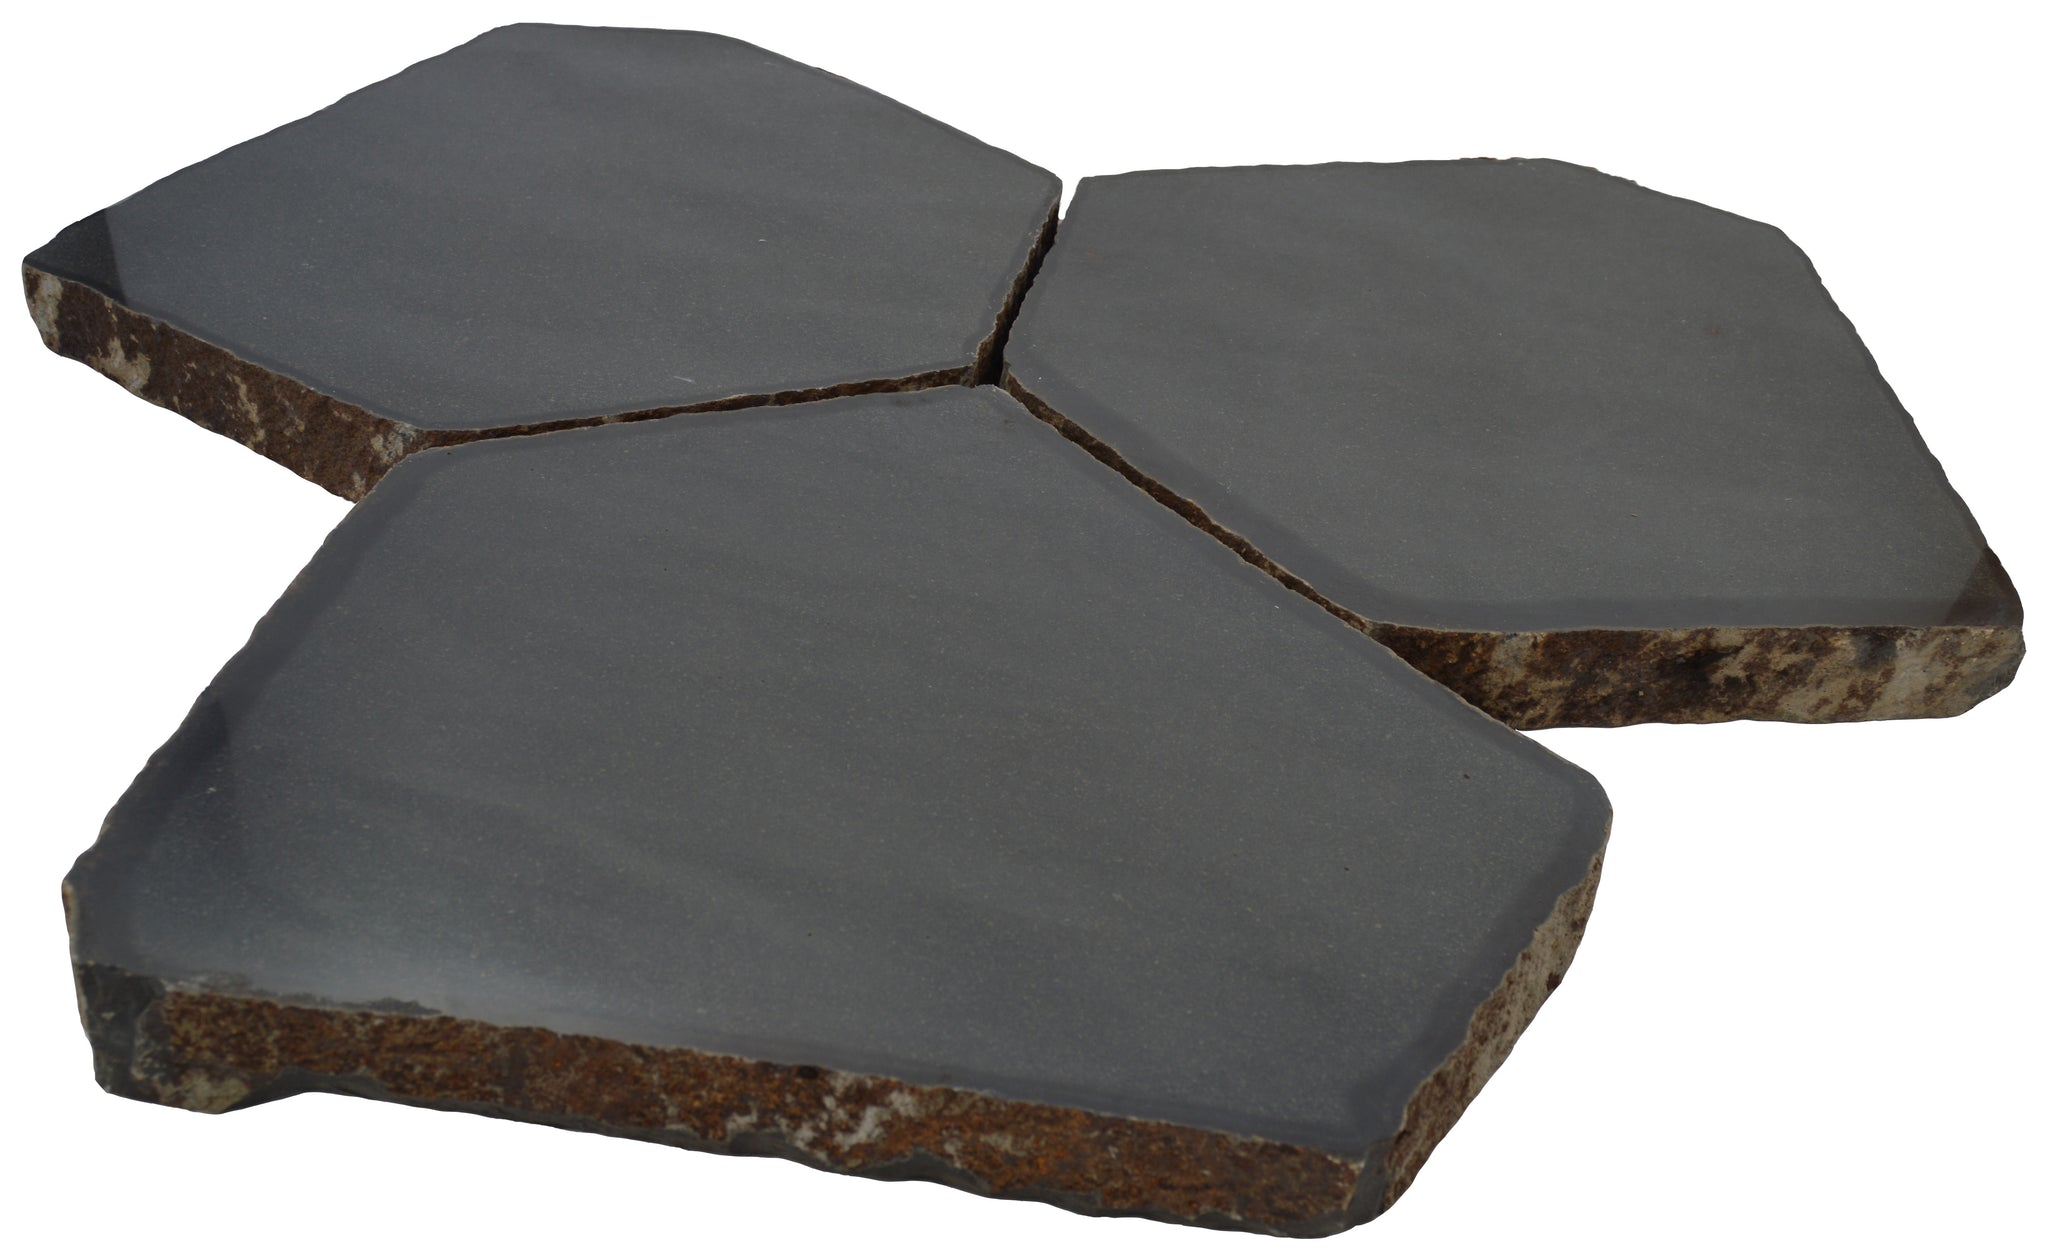 "Basalt Pavers (Hexagon), 20-24"" Diameter, Polished Finish"